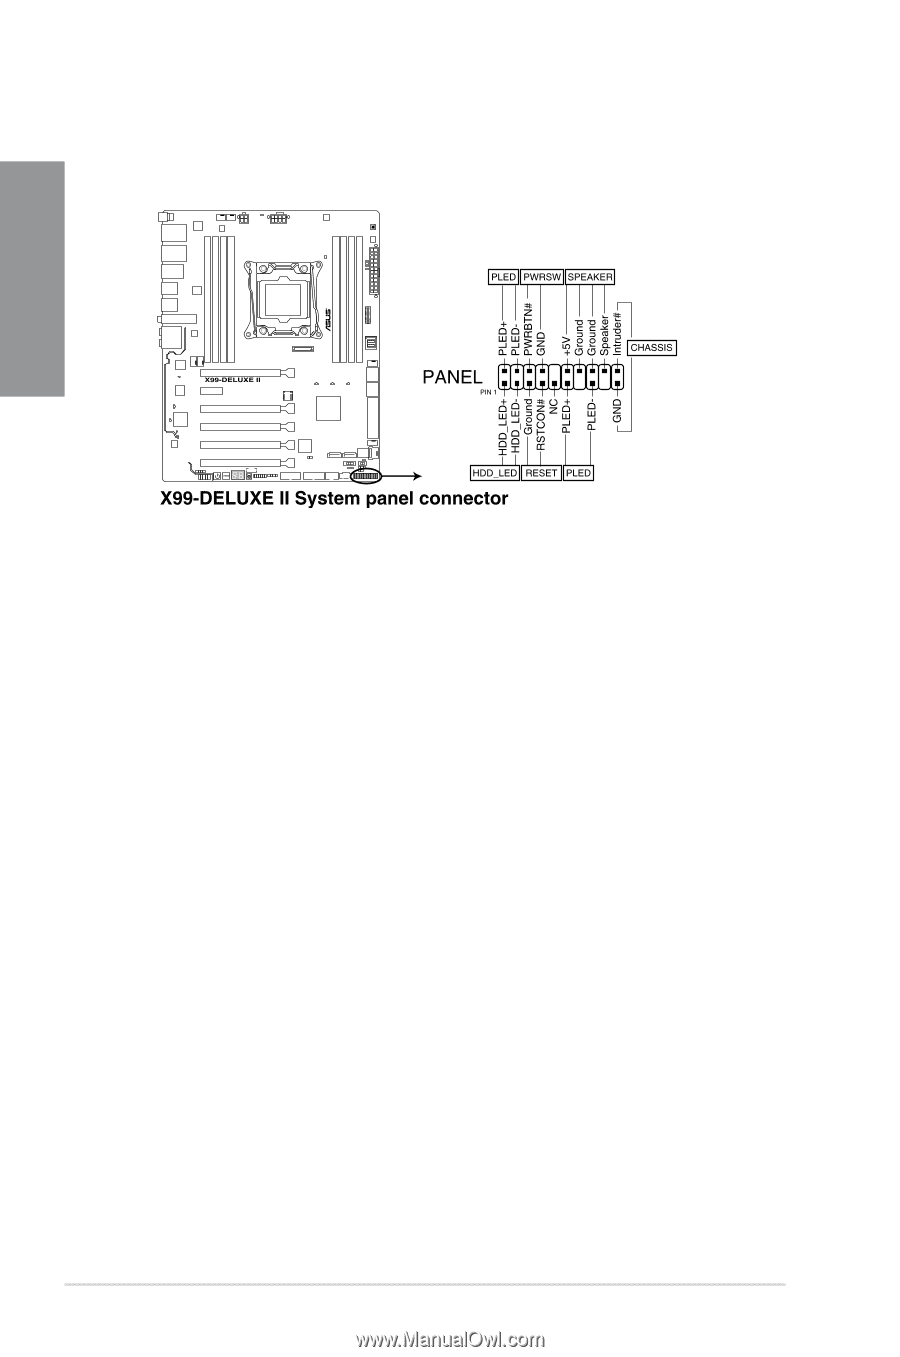 Asus X99-DELUXE II | X99-DELUXE II user s manual English - Page 46